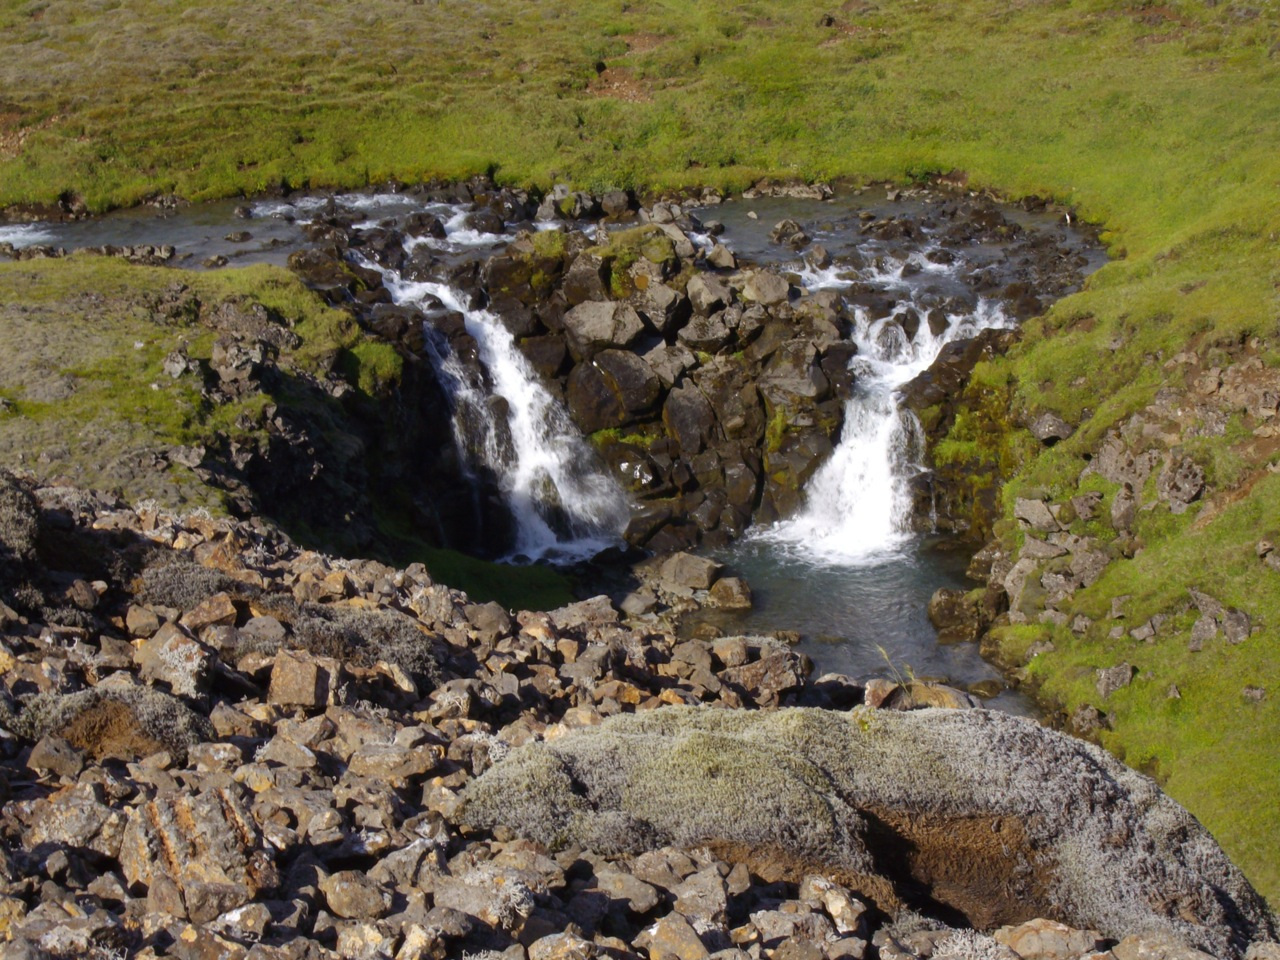 Waterfall near the camp in Hengill